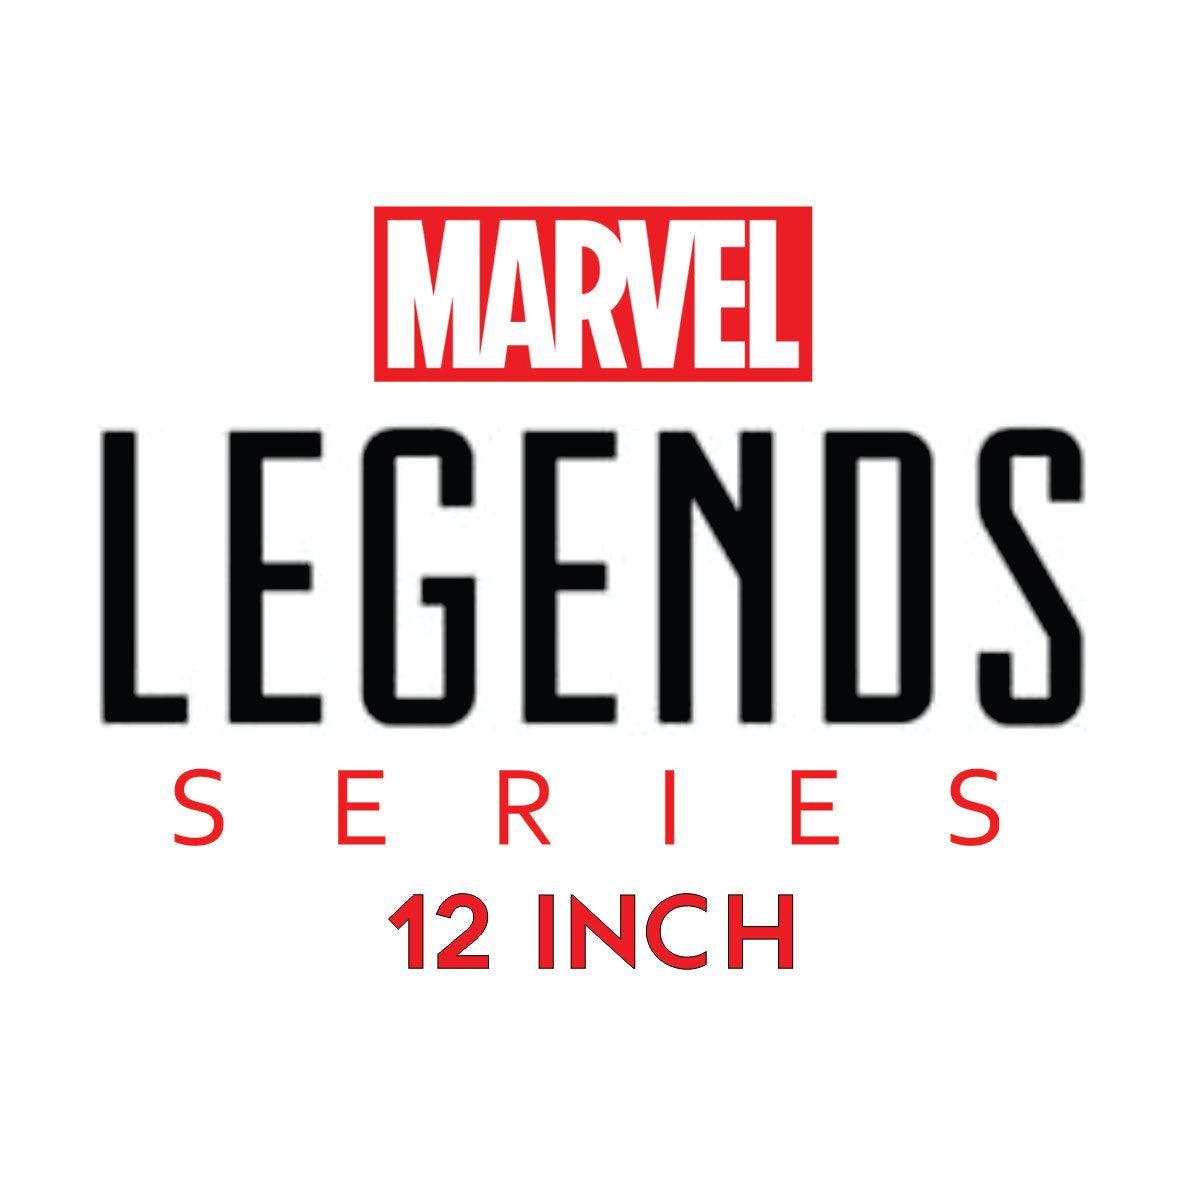 Marvel Legends 12 Inch